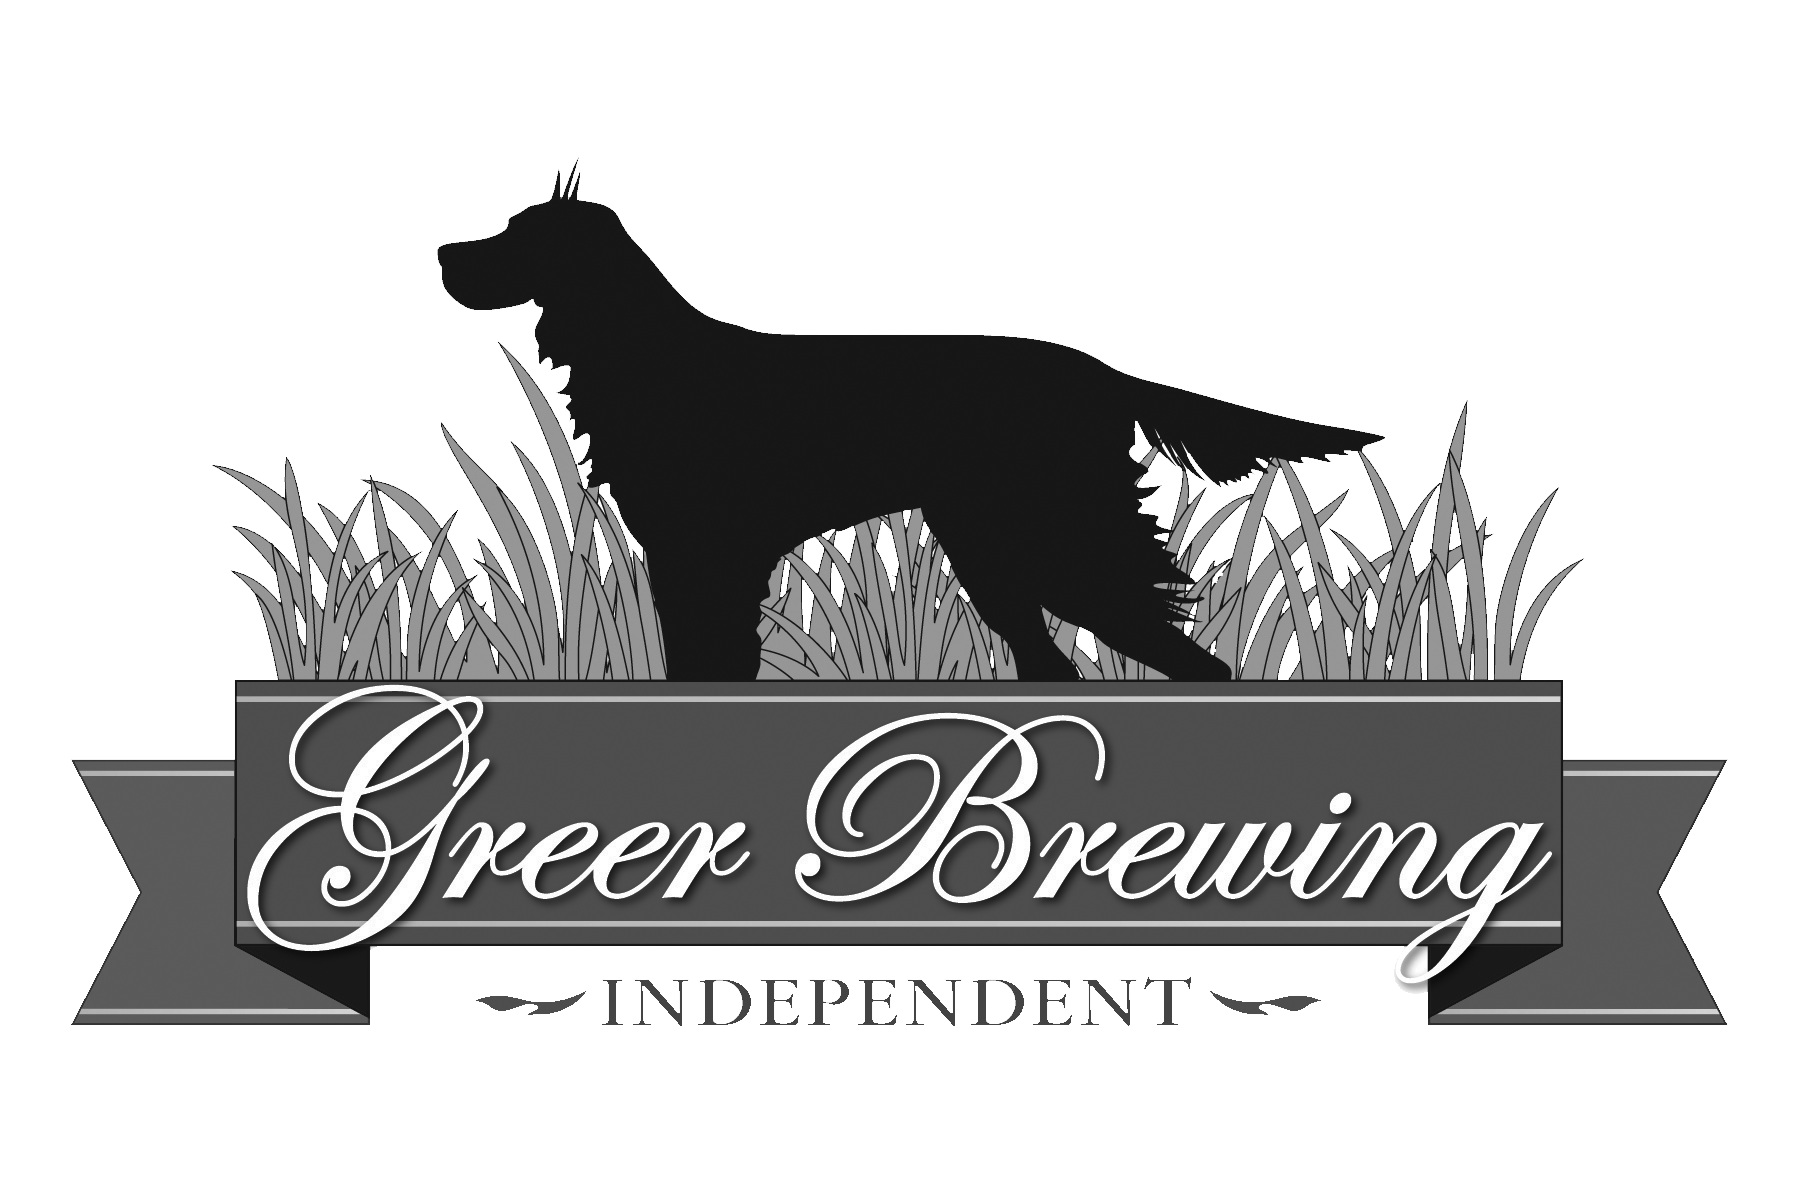 Greer Brewing Company